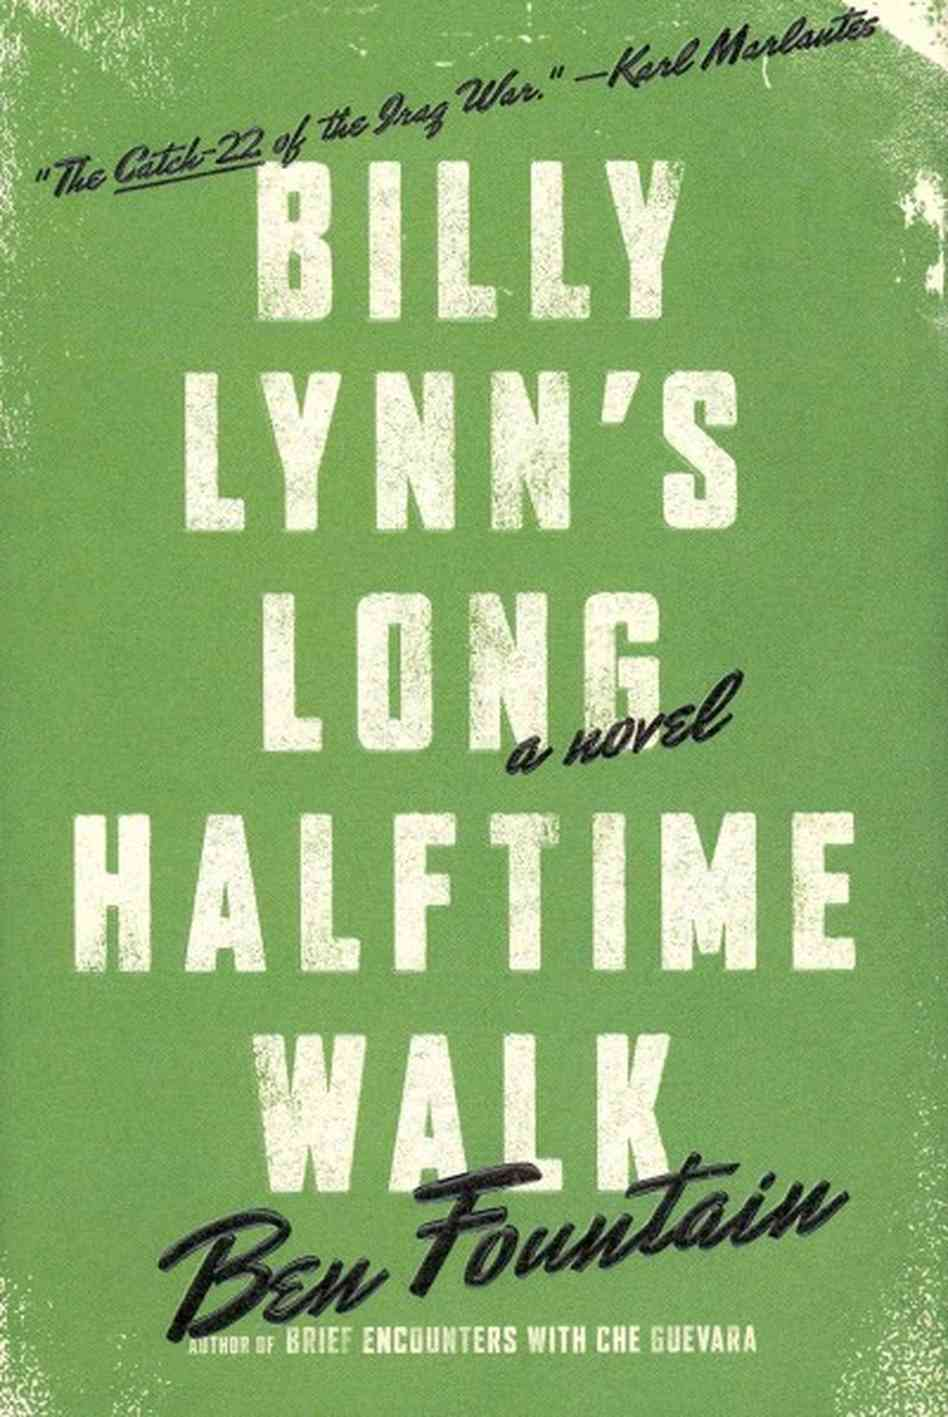 2012 - Ben Fountain for  Billy Lynn's Long Halftime Walk